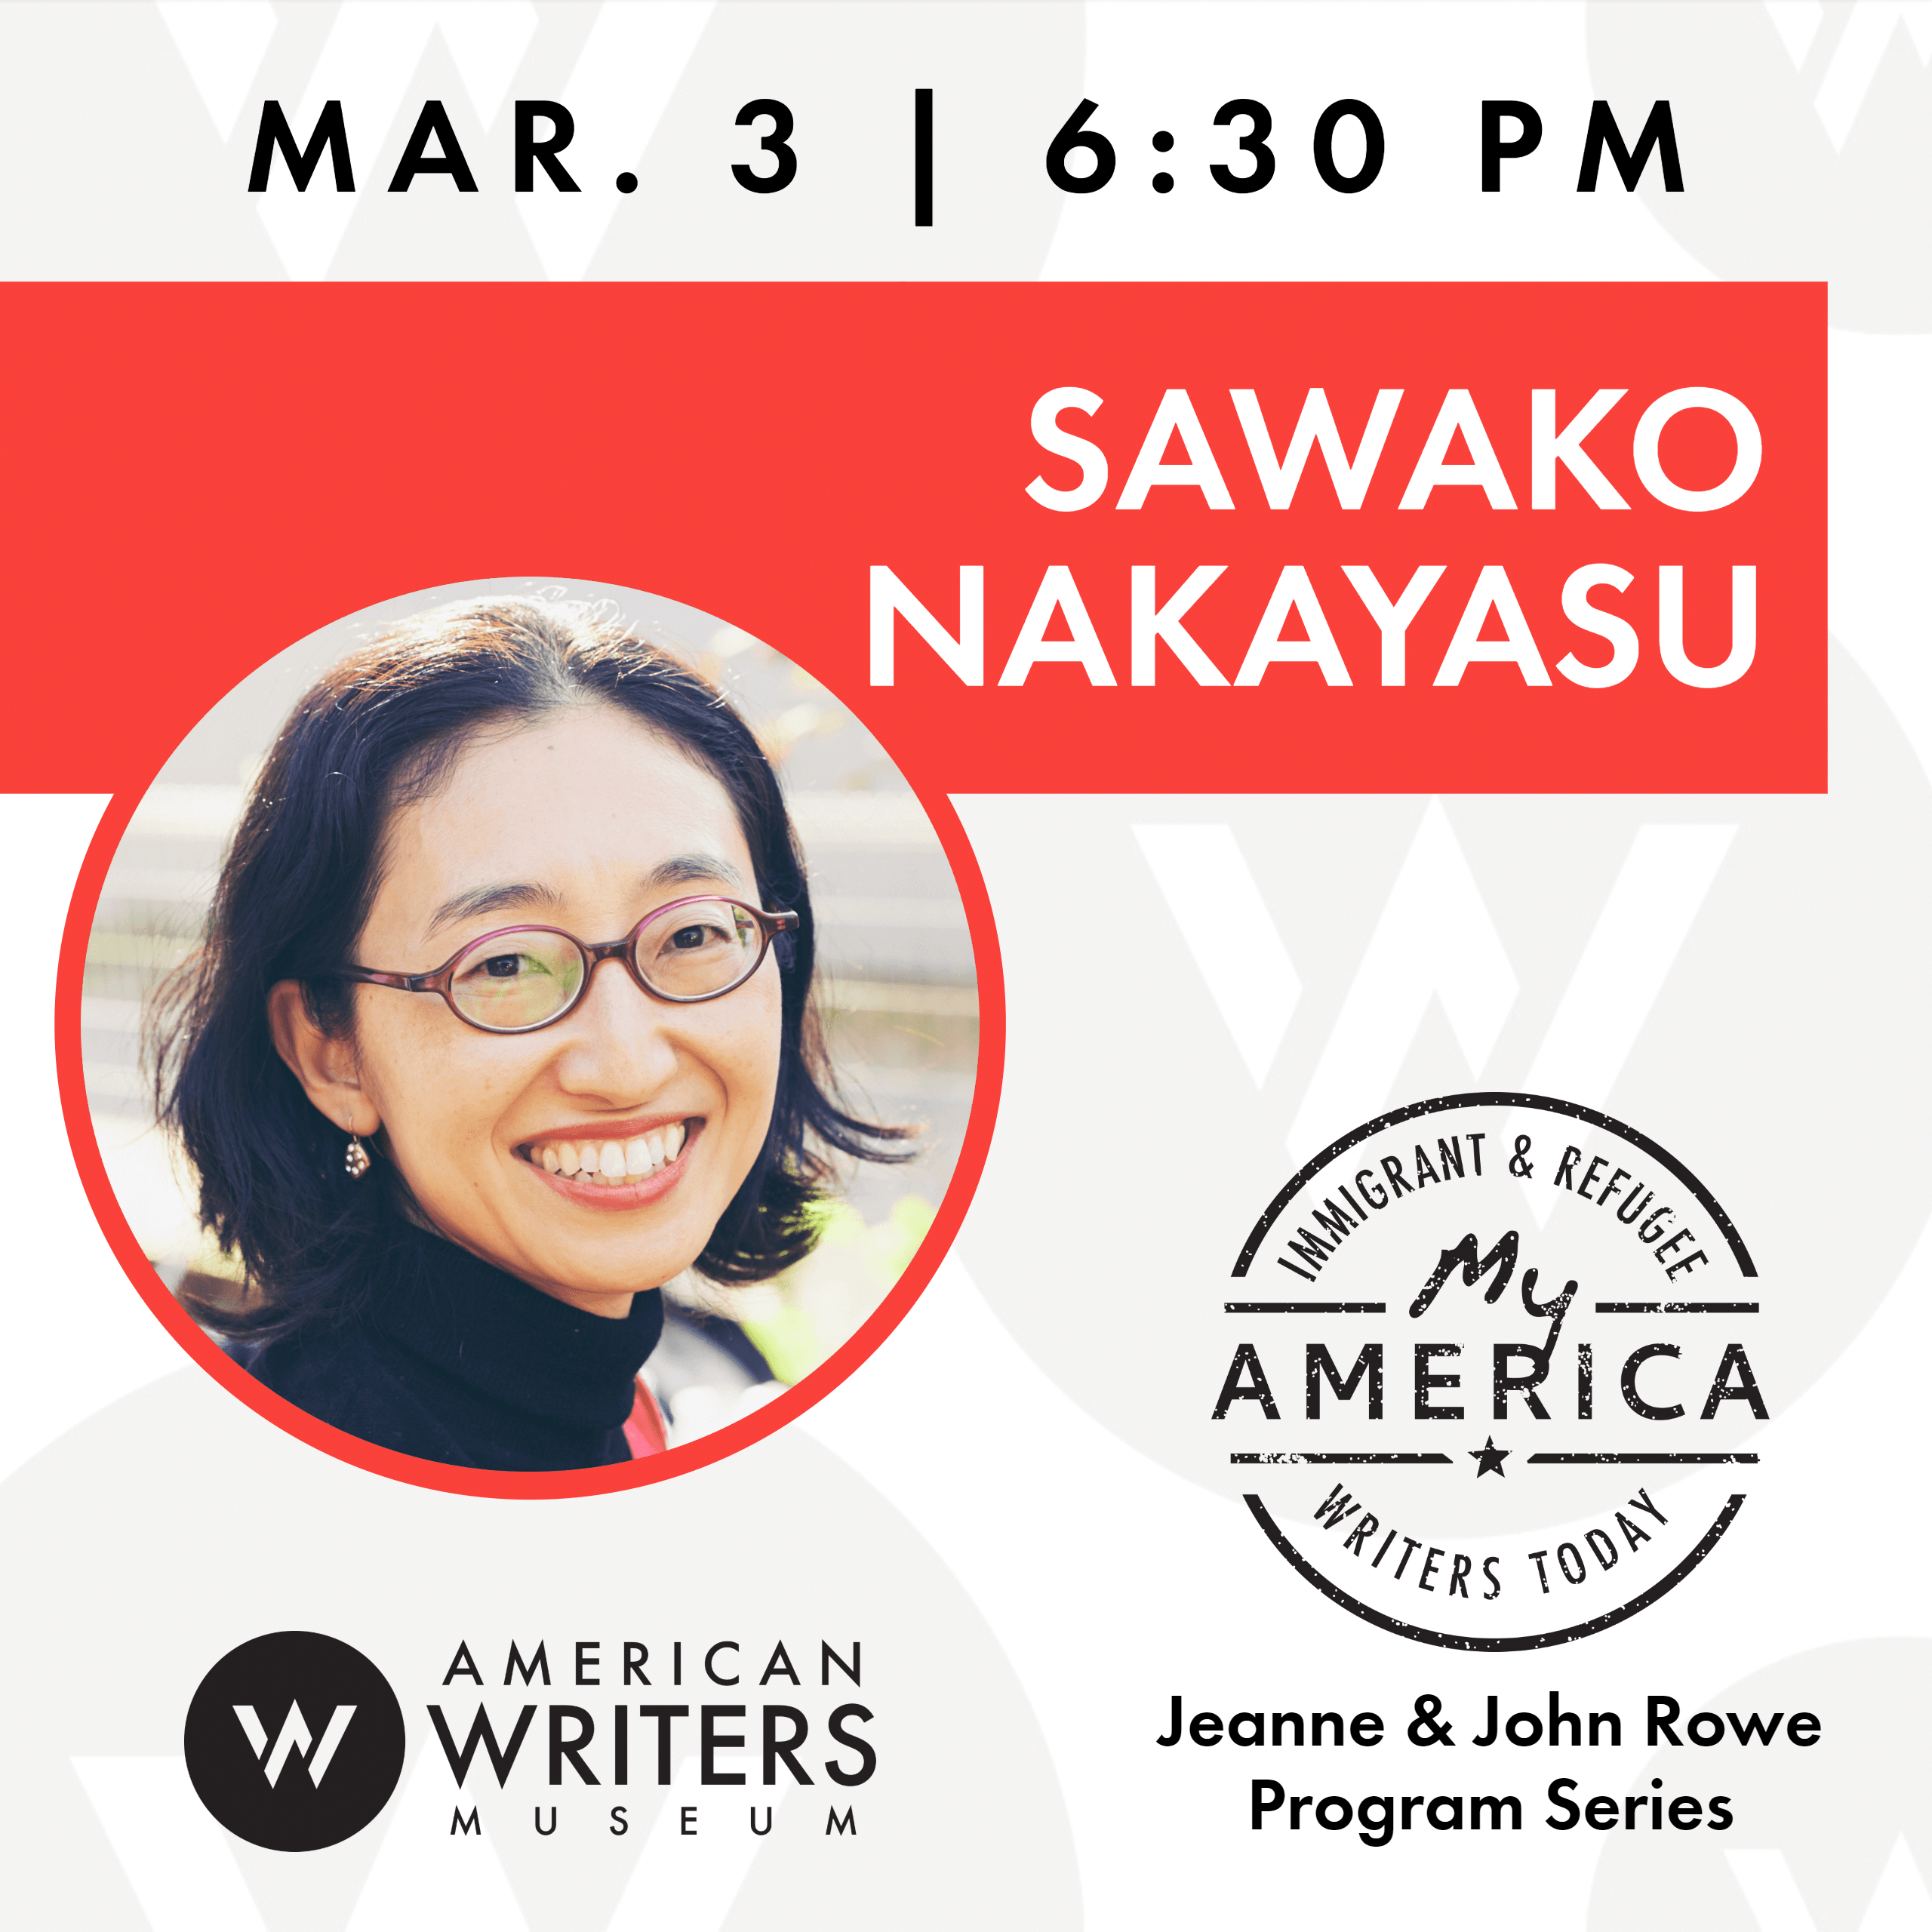 Sawako Nakayasu reading and book signing at the American Writers Museum on March 3